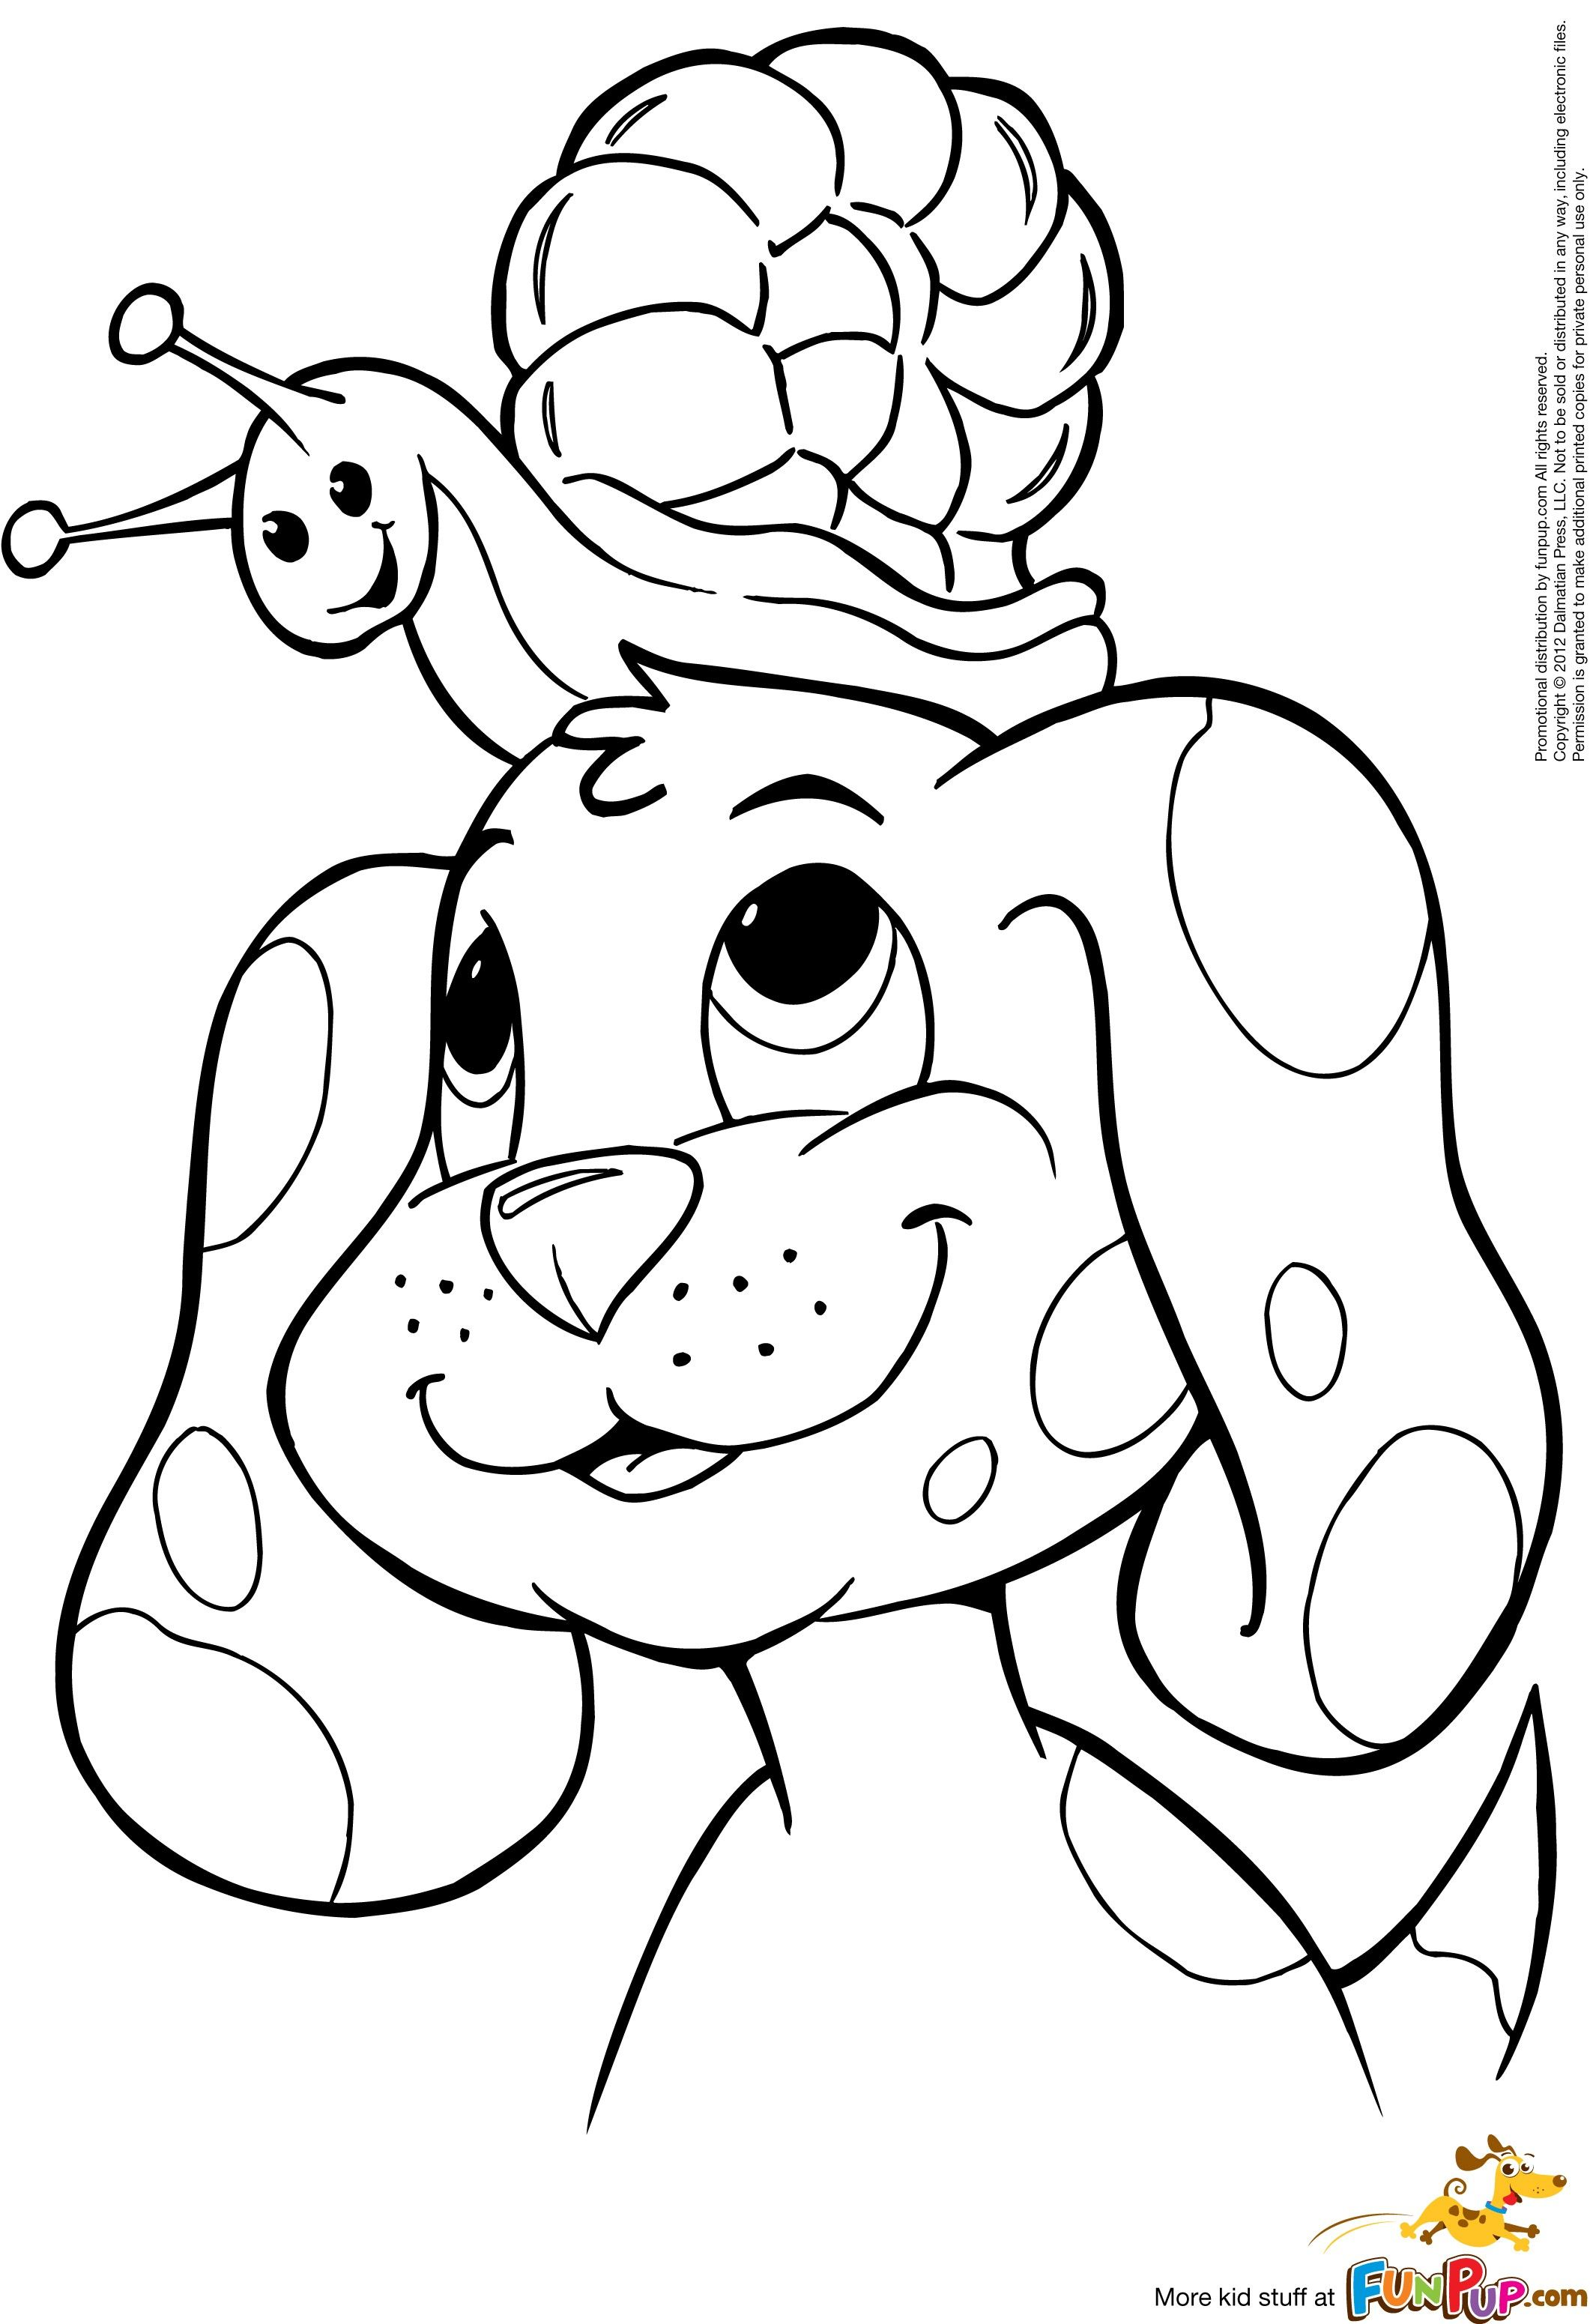 Kids coloring book pages free - Coloring Page For Girls Pages Drawasioinfo Incridible Cute Printable Kids Colouring Incridible Printable Coloring Pages For Girls Cute Coloring Pages For